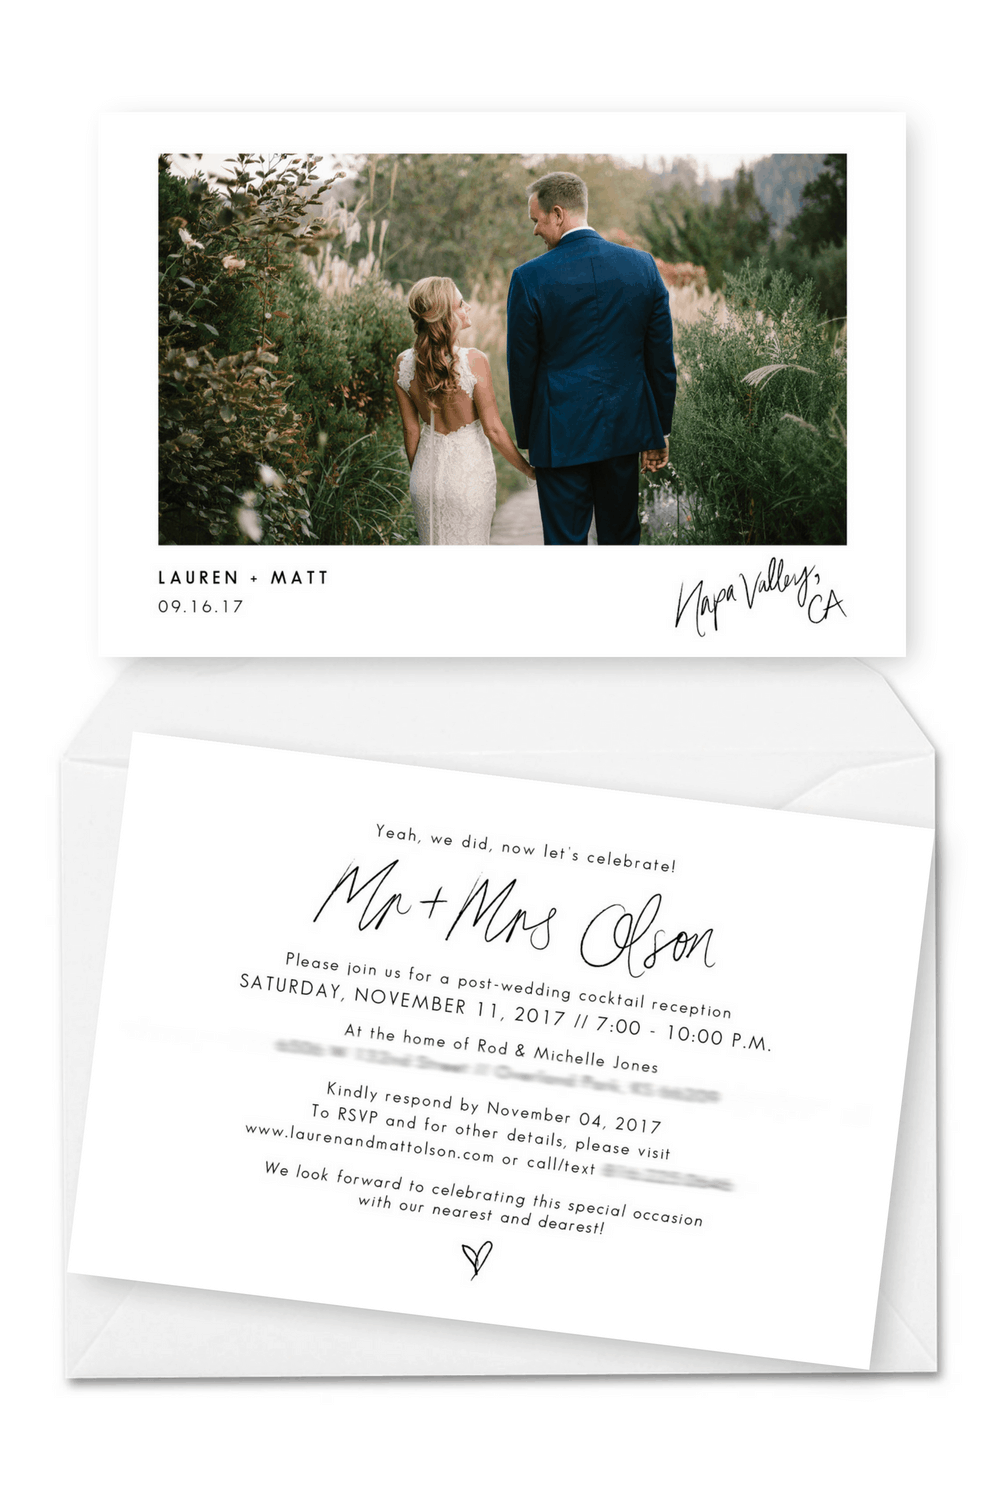 9 Gorgeous Wedding Announcement Cards And Elopement Invitation Ideas